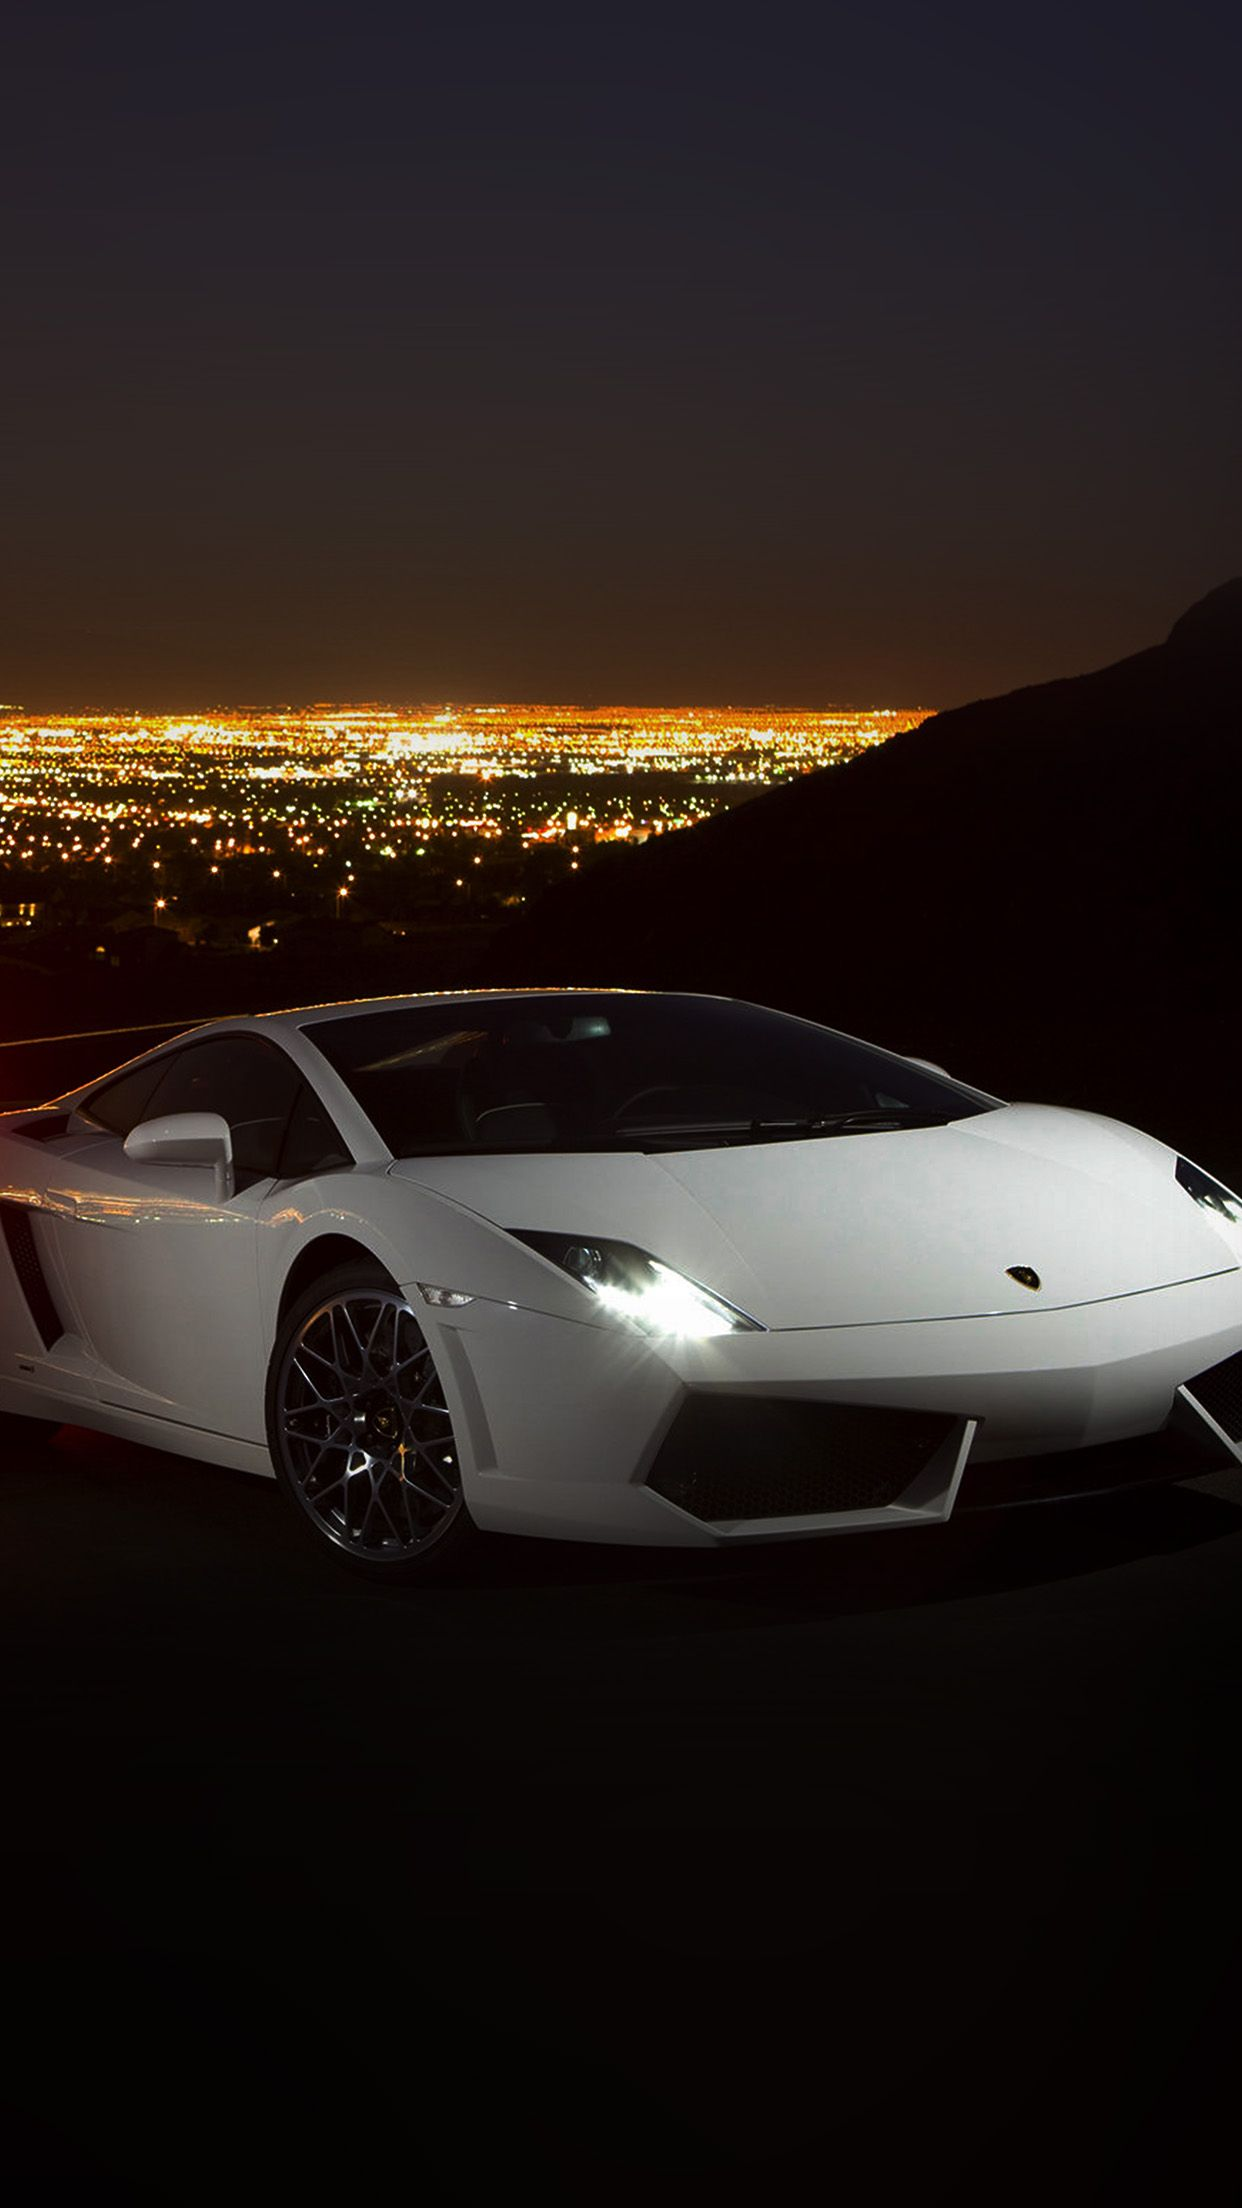 Nice Car Lamborghini Art Dark Night Drive Iphone6 Plus Wallpaper